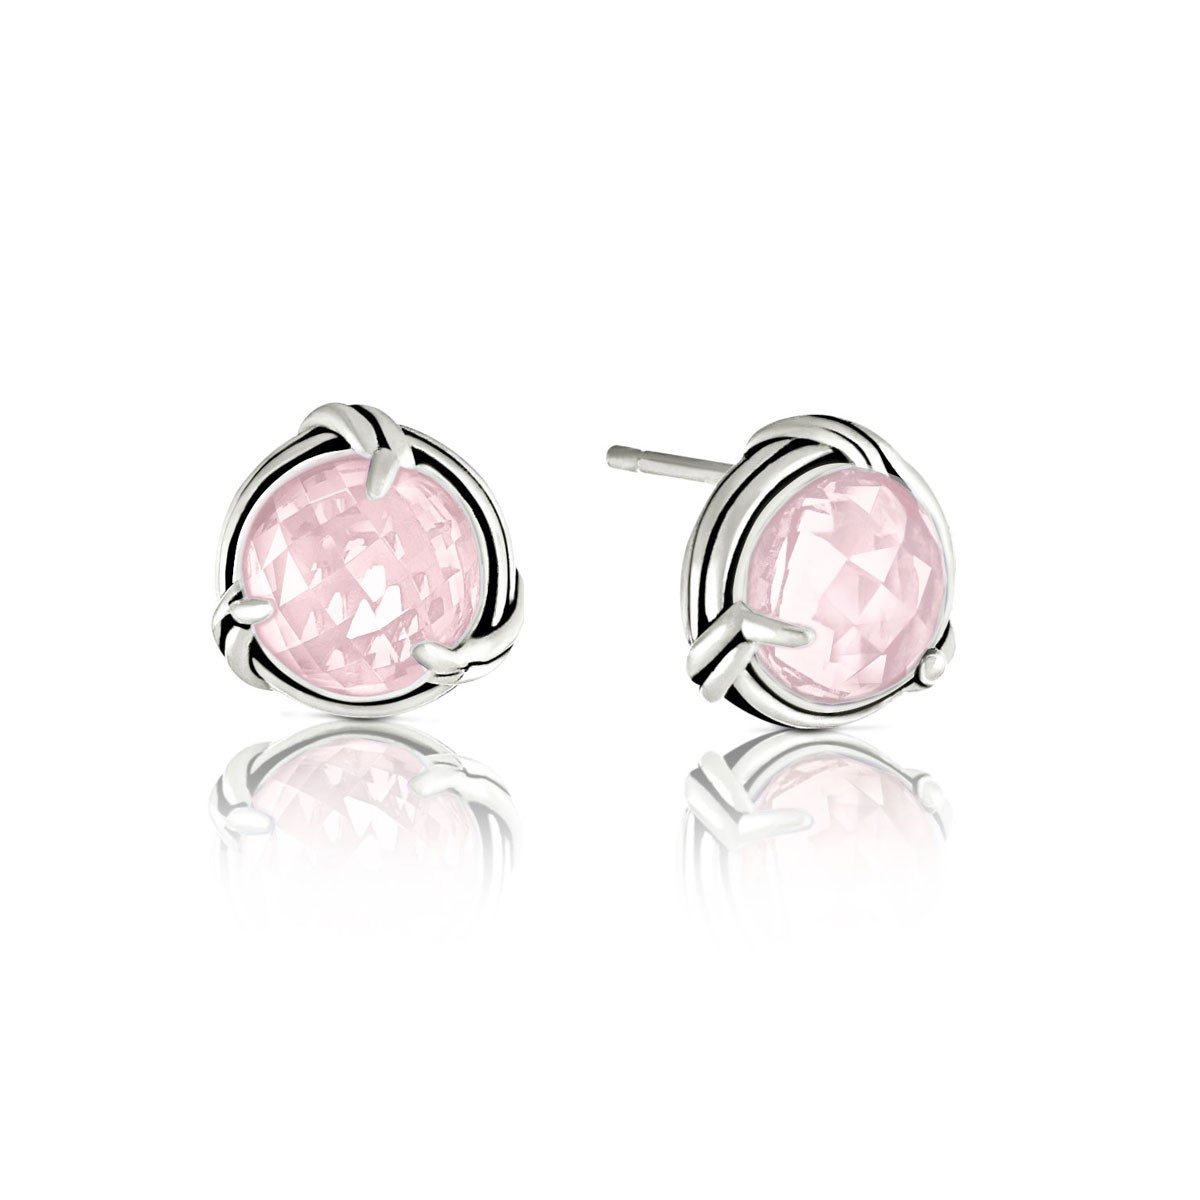 Peter Thomas Roth Ribbon And Reed Rose Quartz Stud Earrings In Sterling Silver